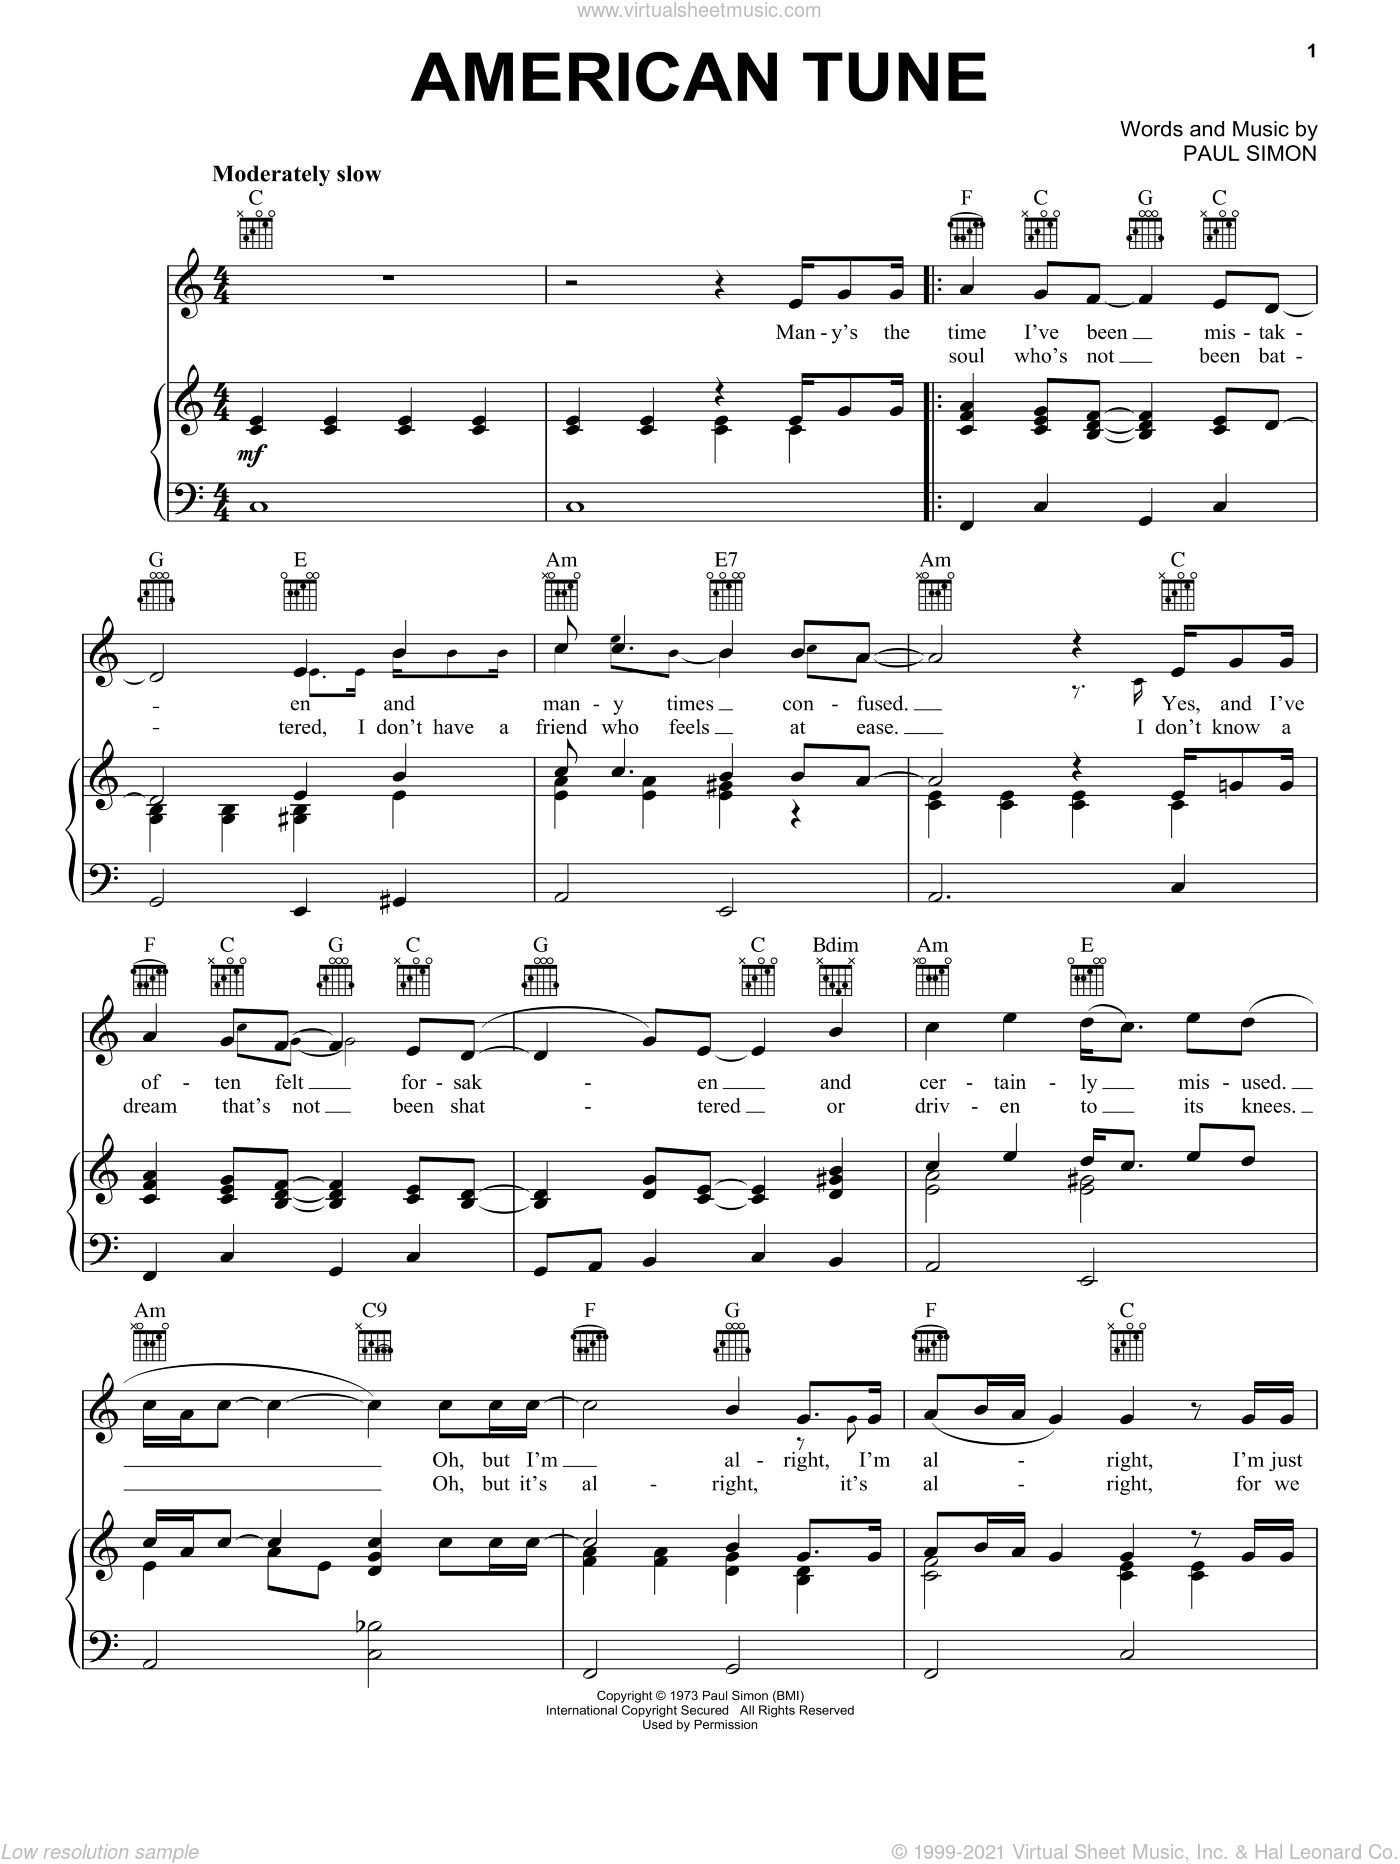 American Tune sheet music for voice, piano or guitar by Paul Simon, intermediate skill level